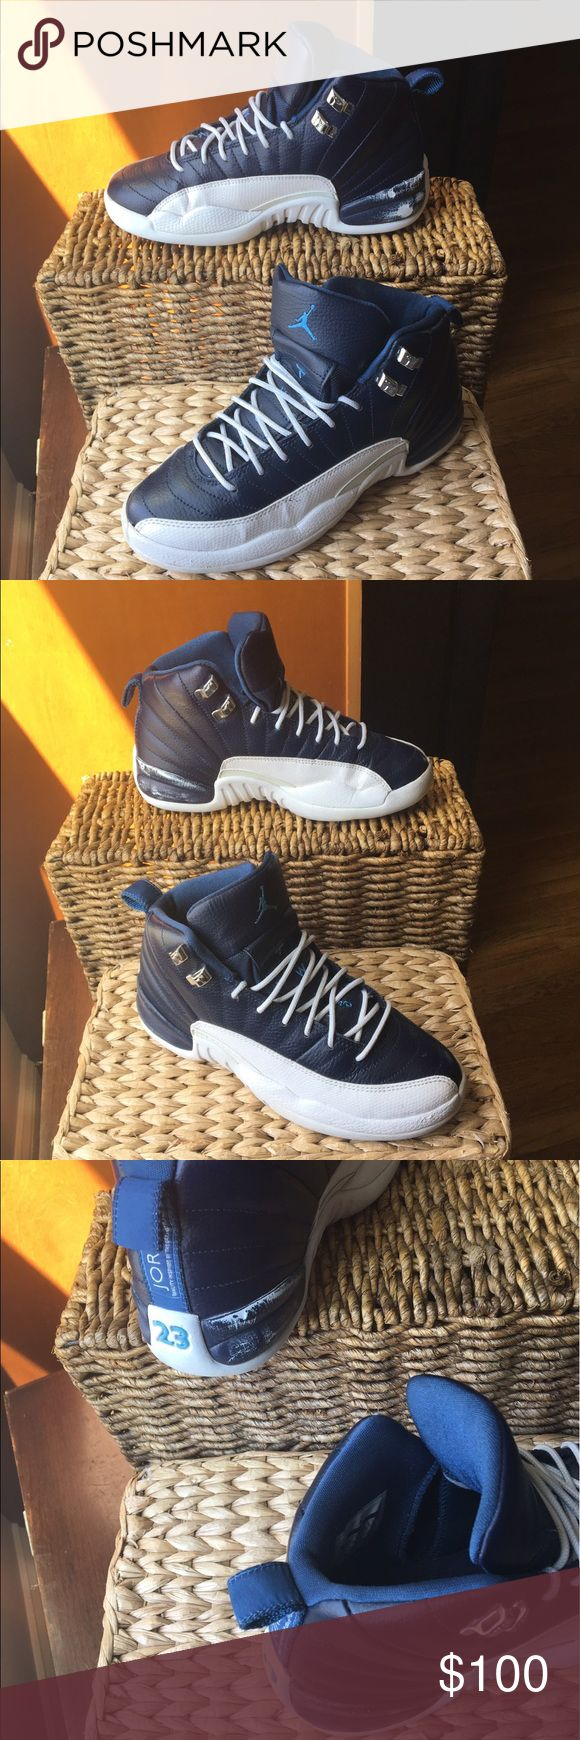 25 best ideas about retro 12 on